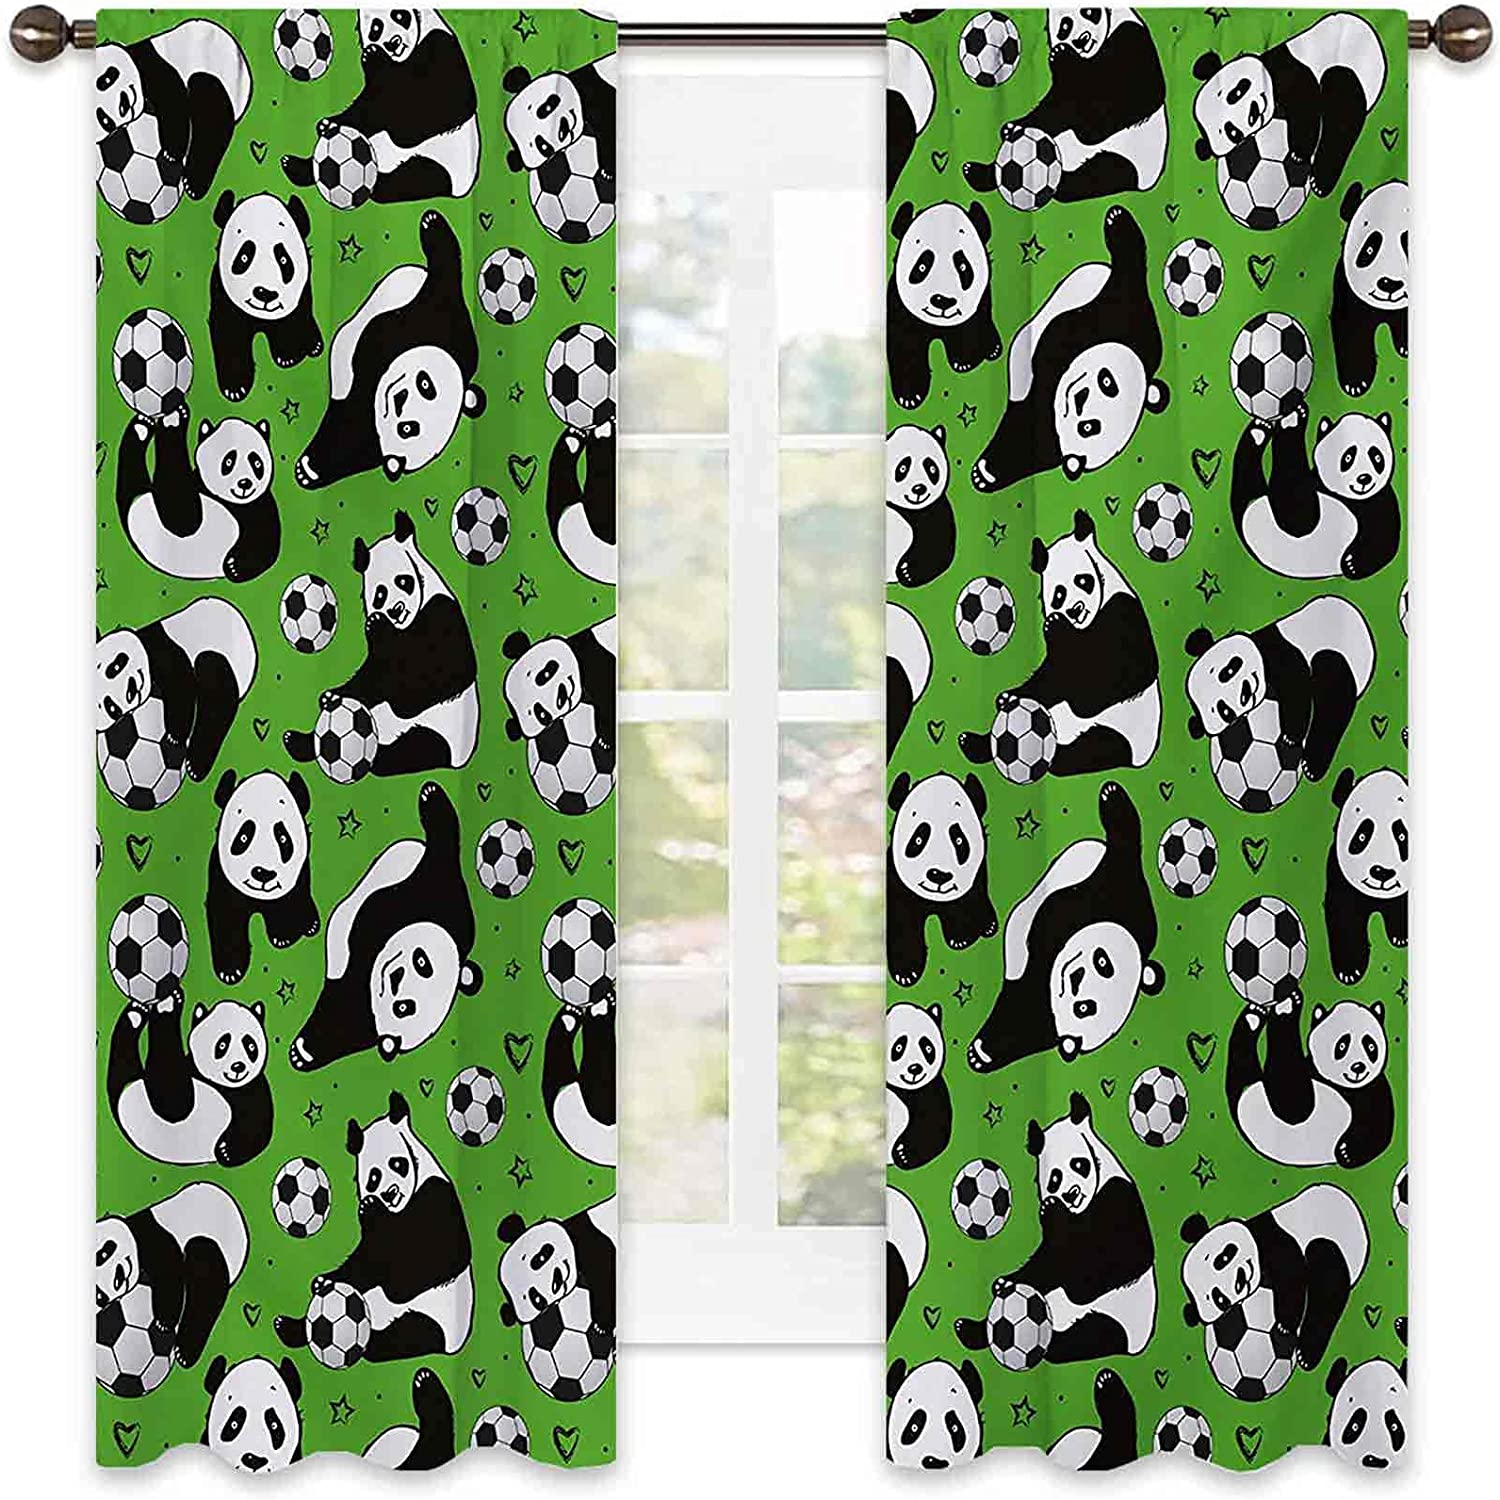 Soccer Super Special SALE held Heat Insulation Curtain Funny with Playing Panda Animals Safety and trust